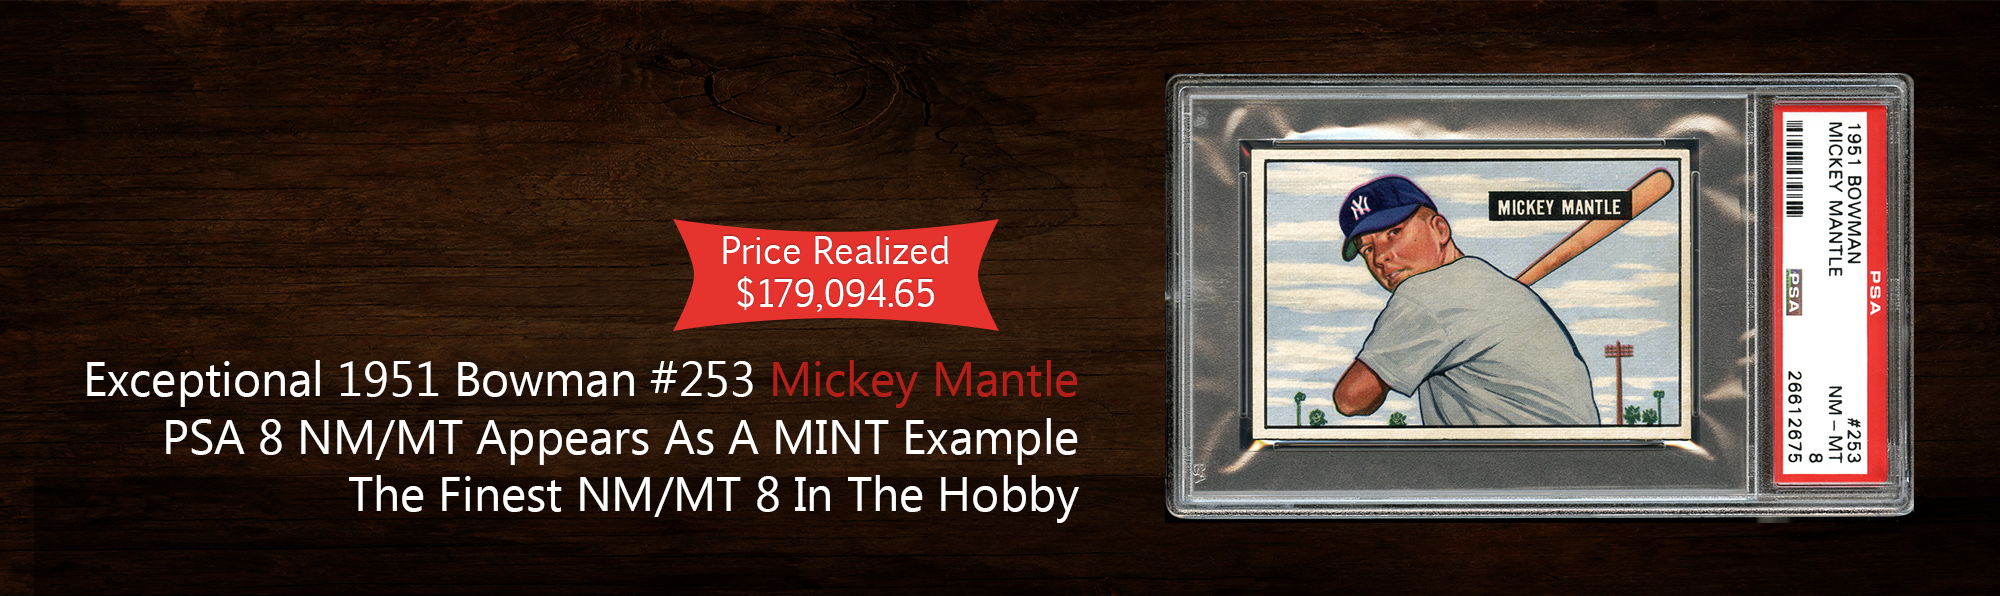 1951 Bowman #253 Mickey Mantle PSA 8